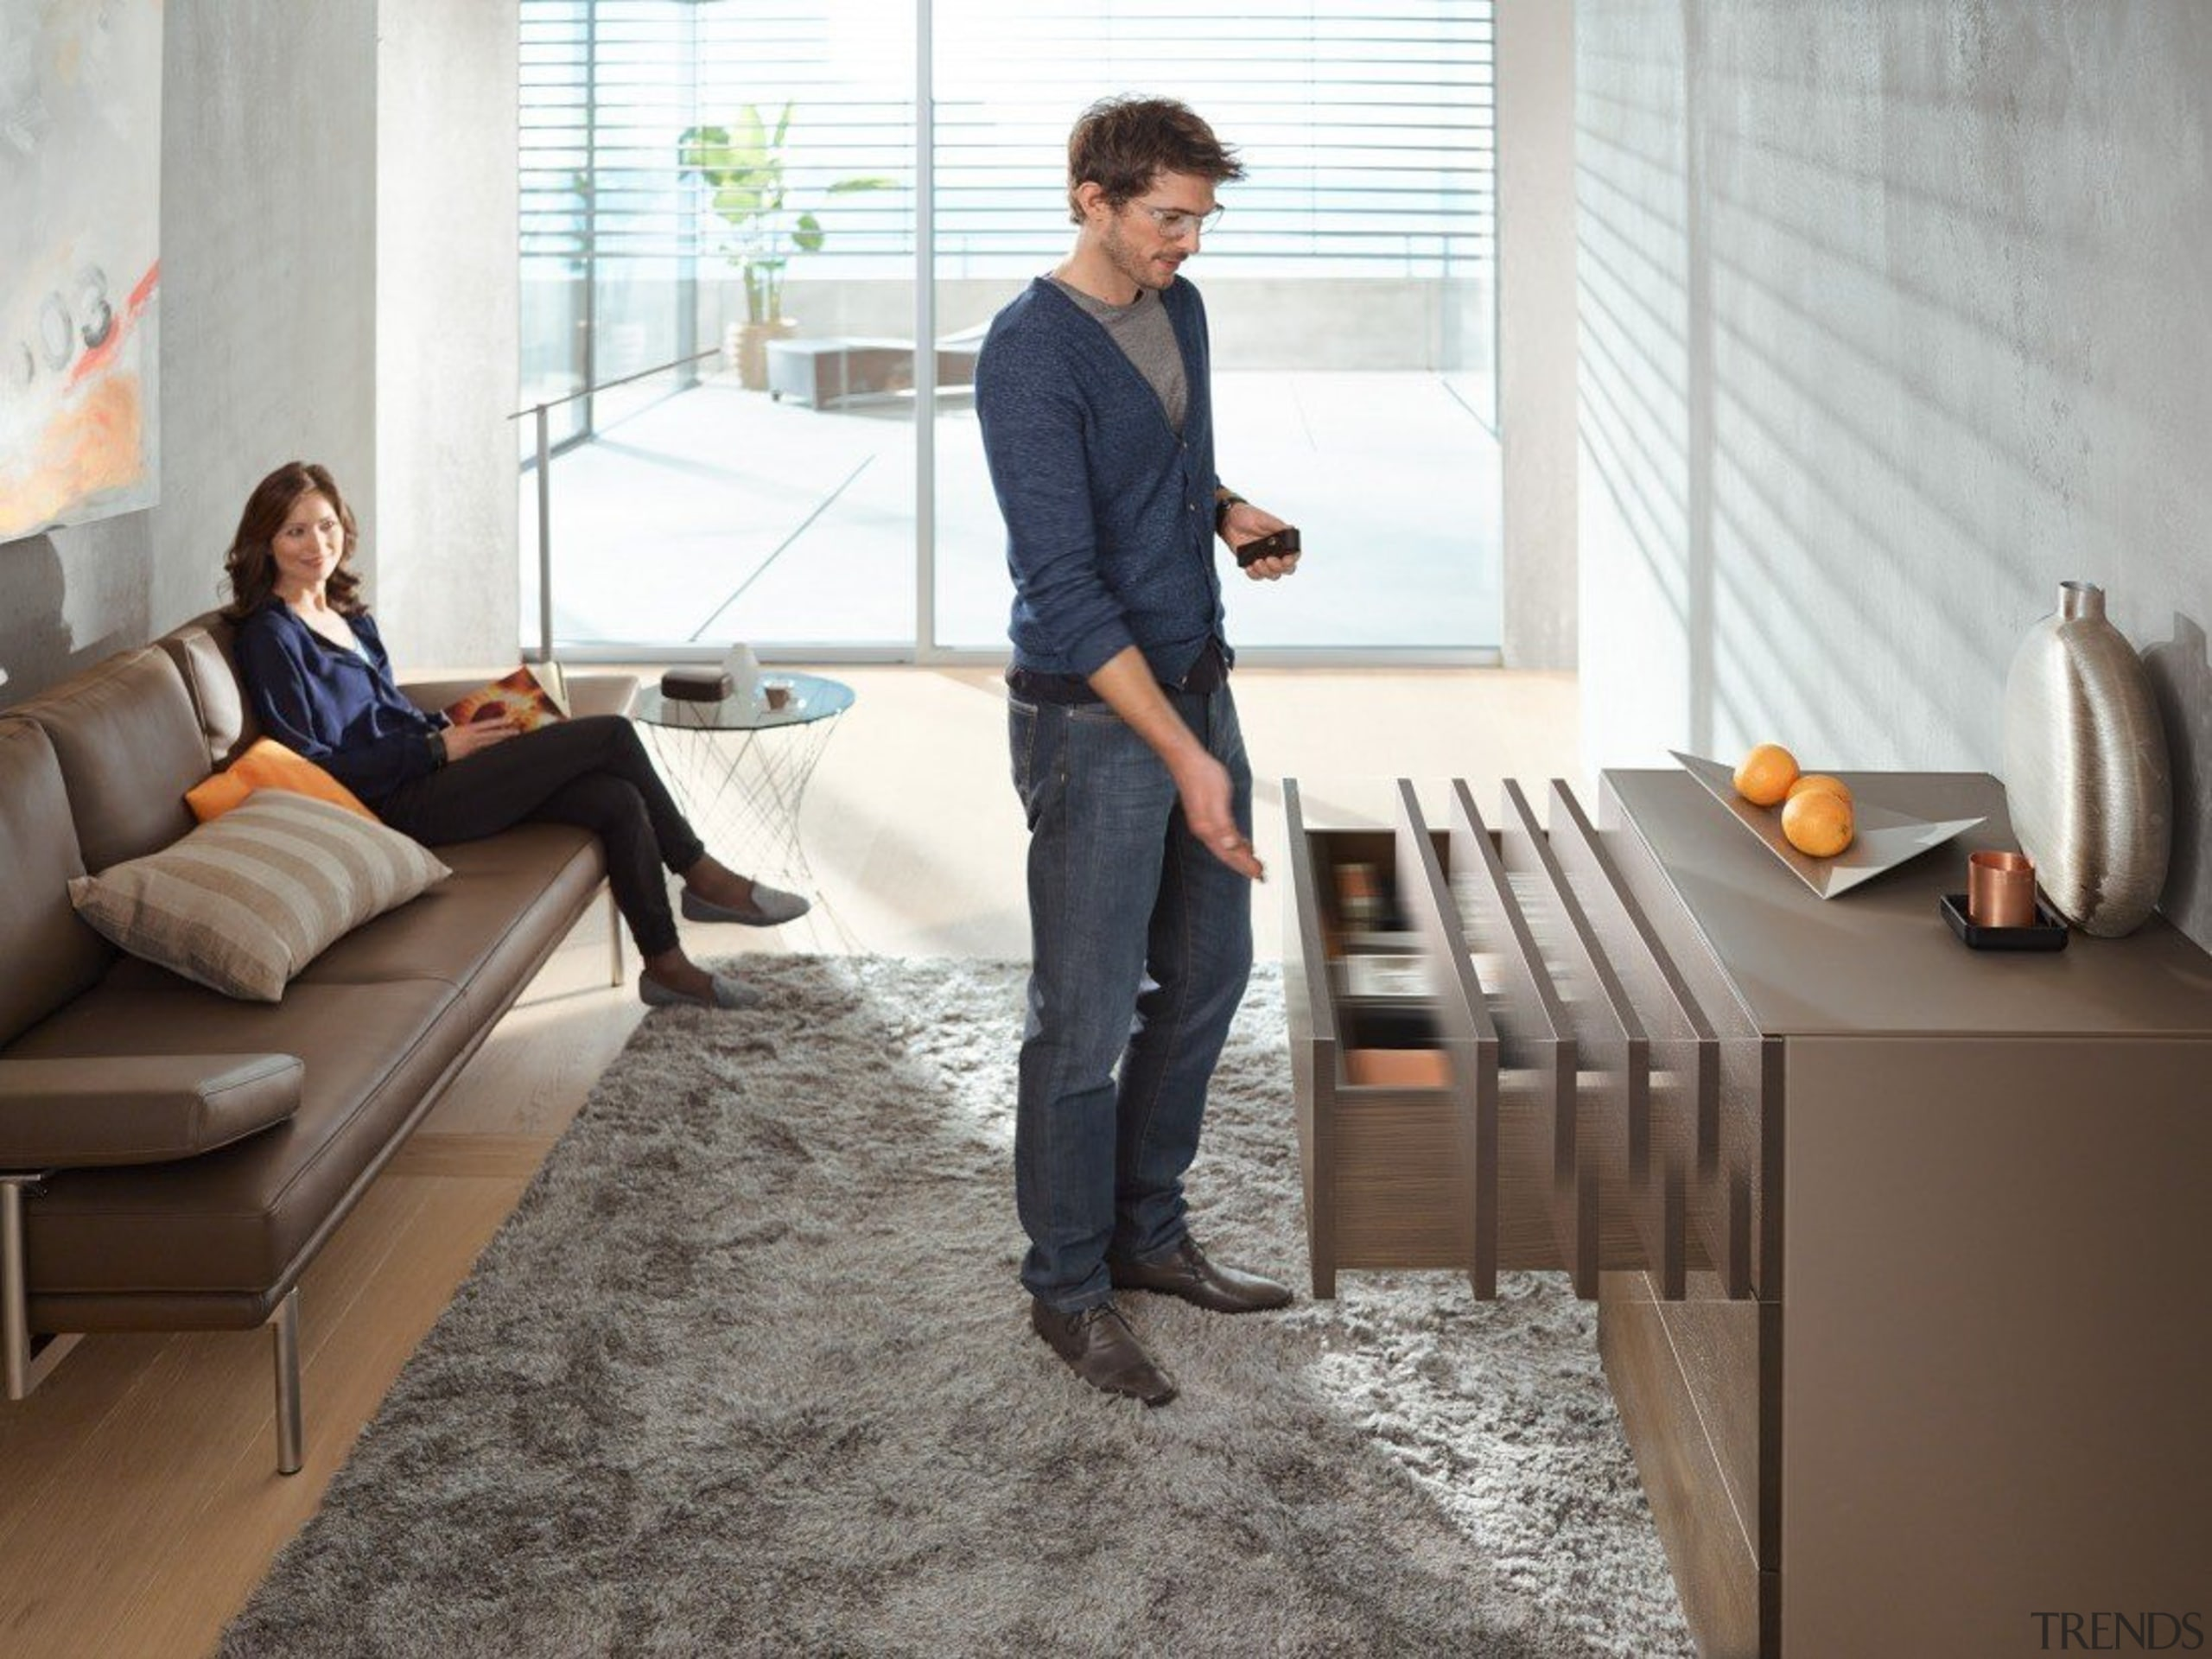 TIP-ON BLUMOTION for MOVENTO combines the advantages of floor, flooring, furniture, interior design, room, table, white